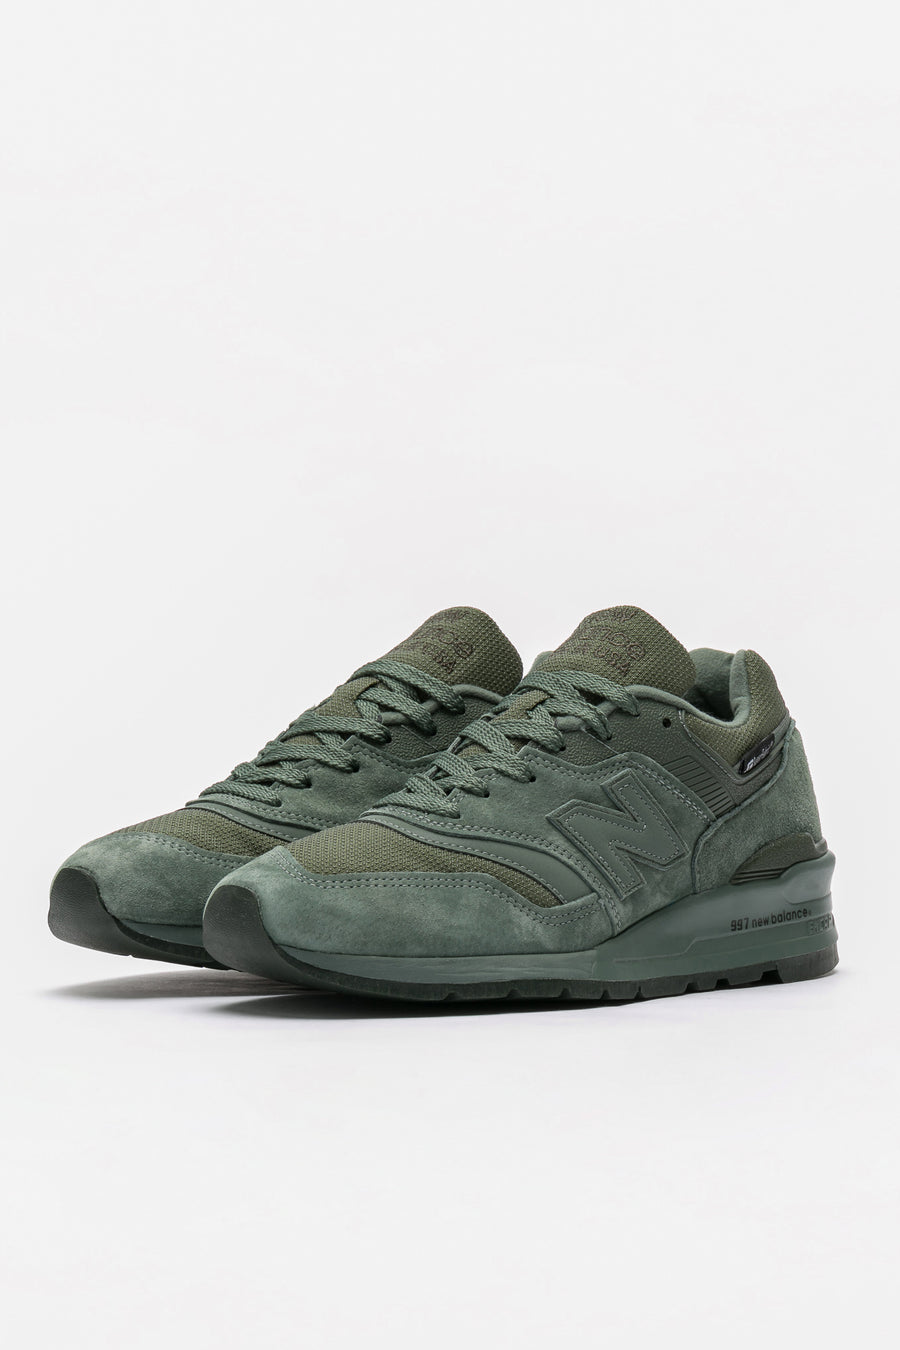 New Balance M997NAL in Sea Foam - Notre